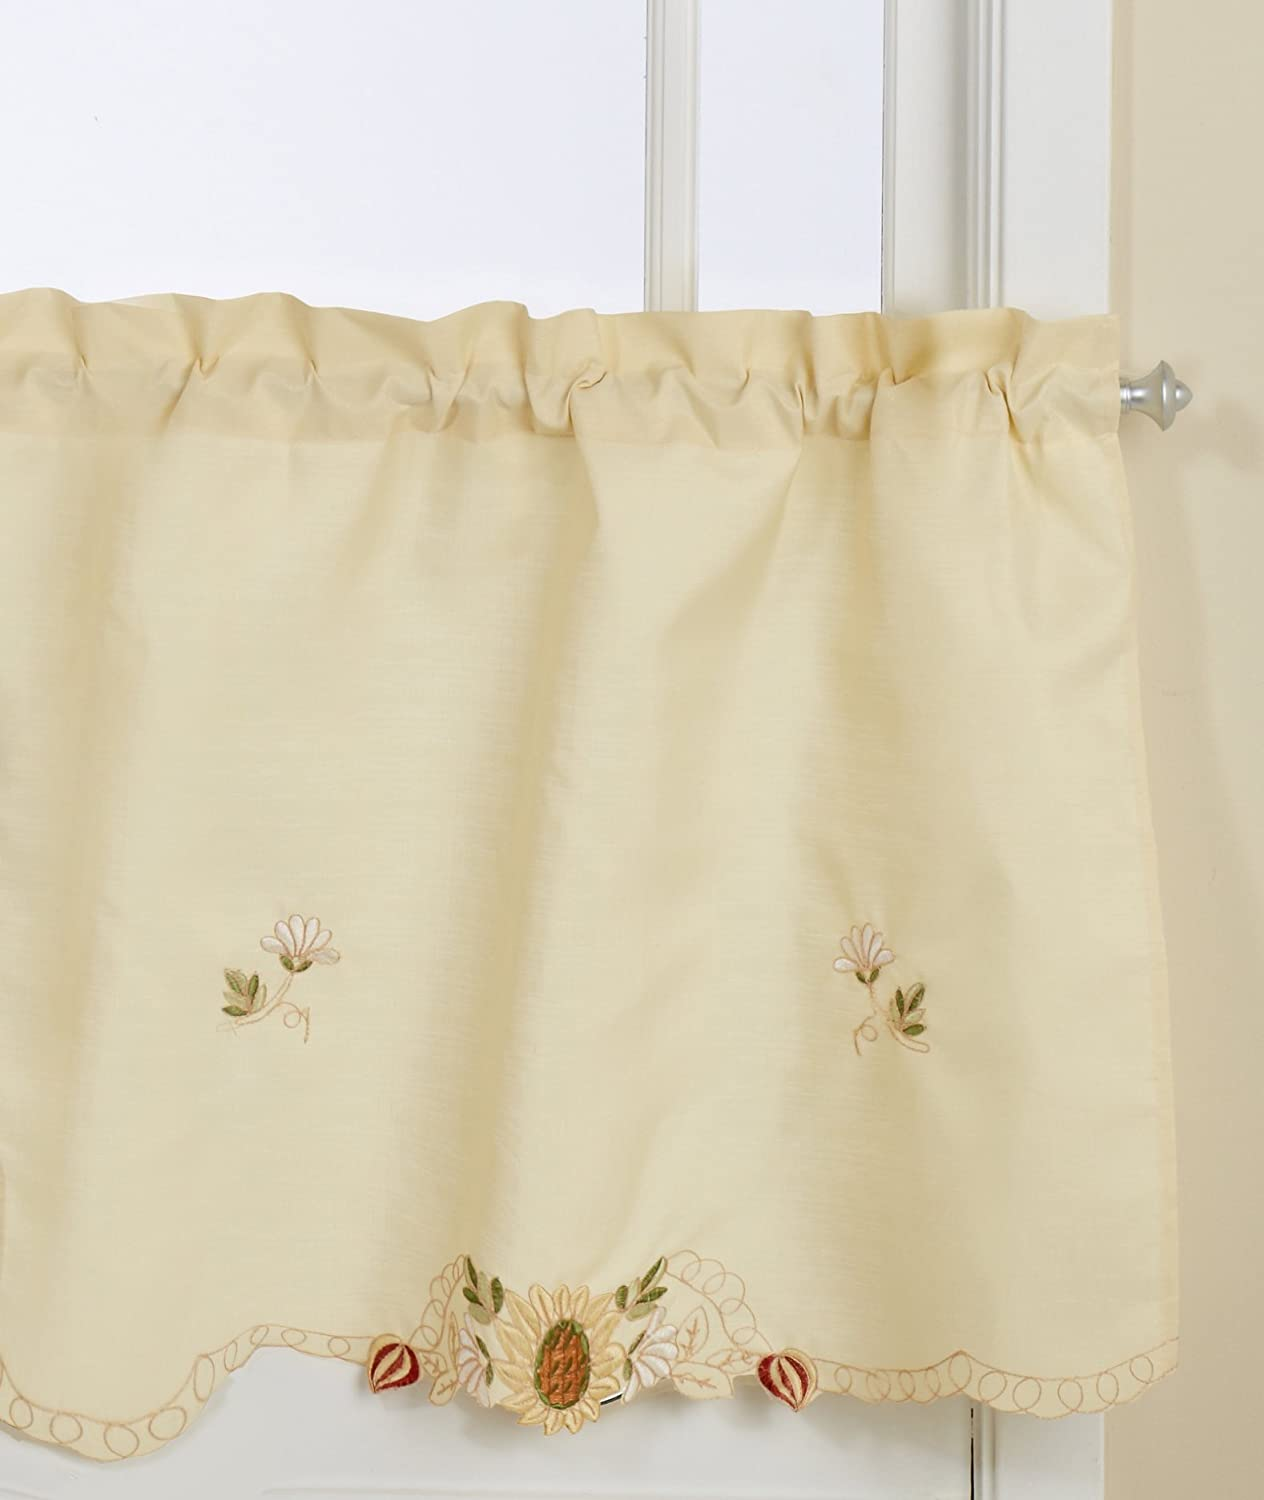 LORRAINE HOME FASHIONS Sunflower Tailored Valance, 60 by 12-Inch, Multi-Color 00370-V-00014